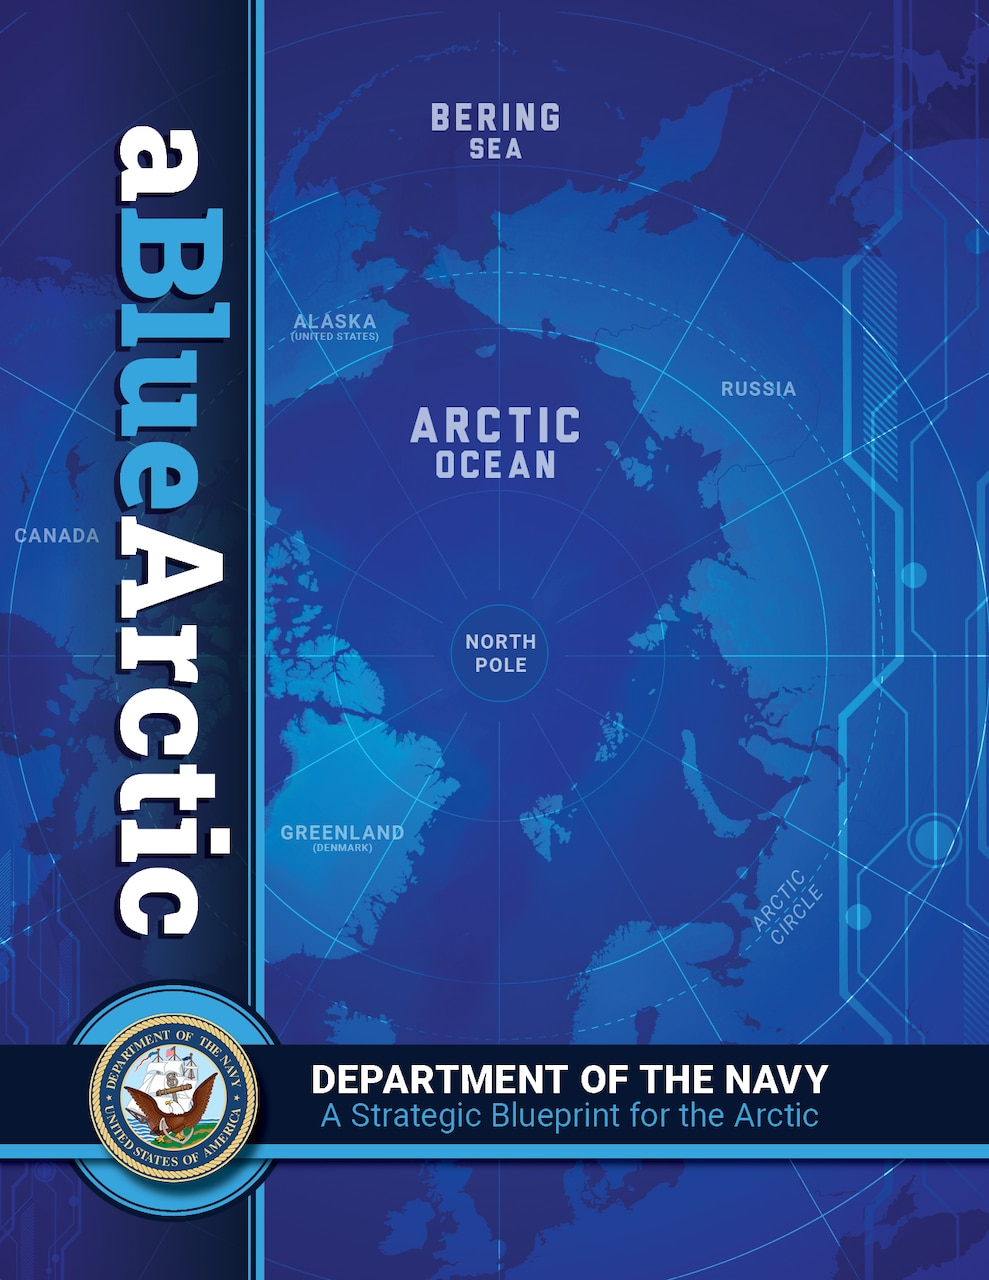 Department of the Navy Releases Strategic Blueprint for a Blue Arctic